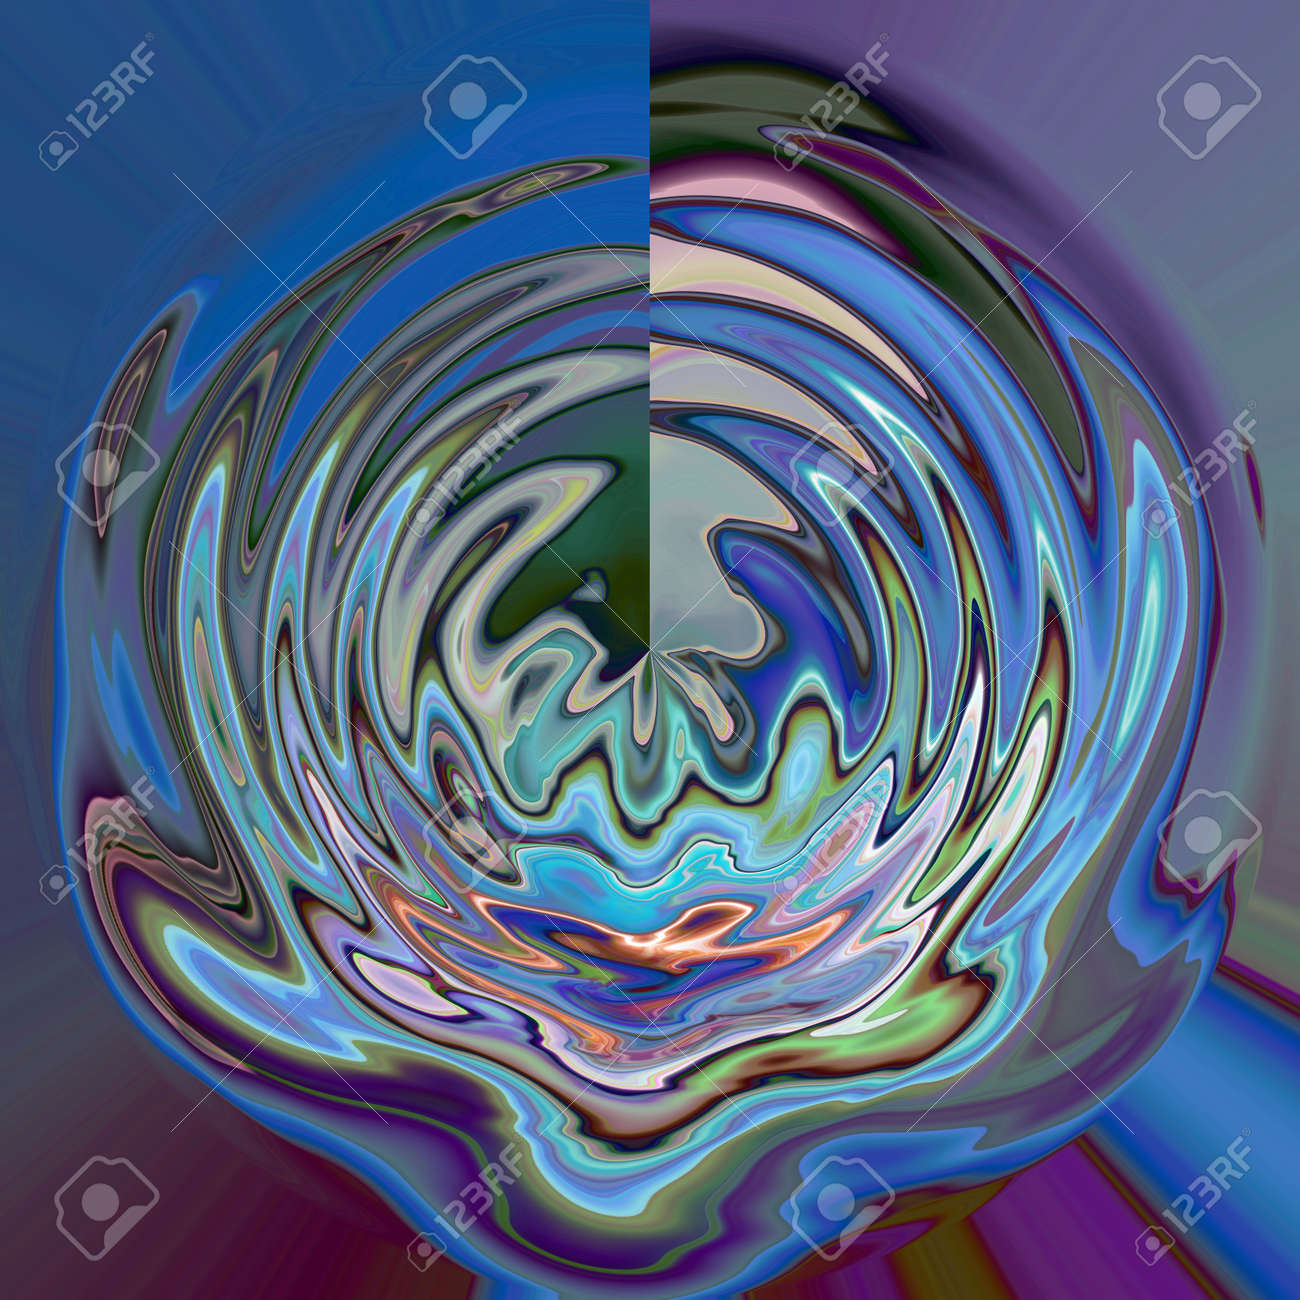 Abstract Coloring Background Of The Horizon Gradient With Visual ...